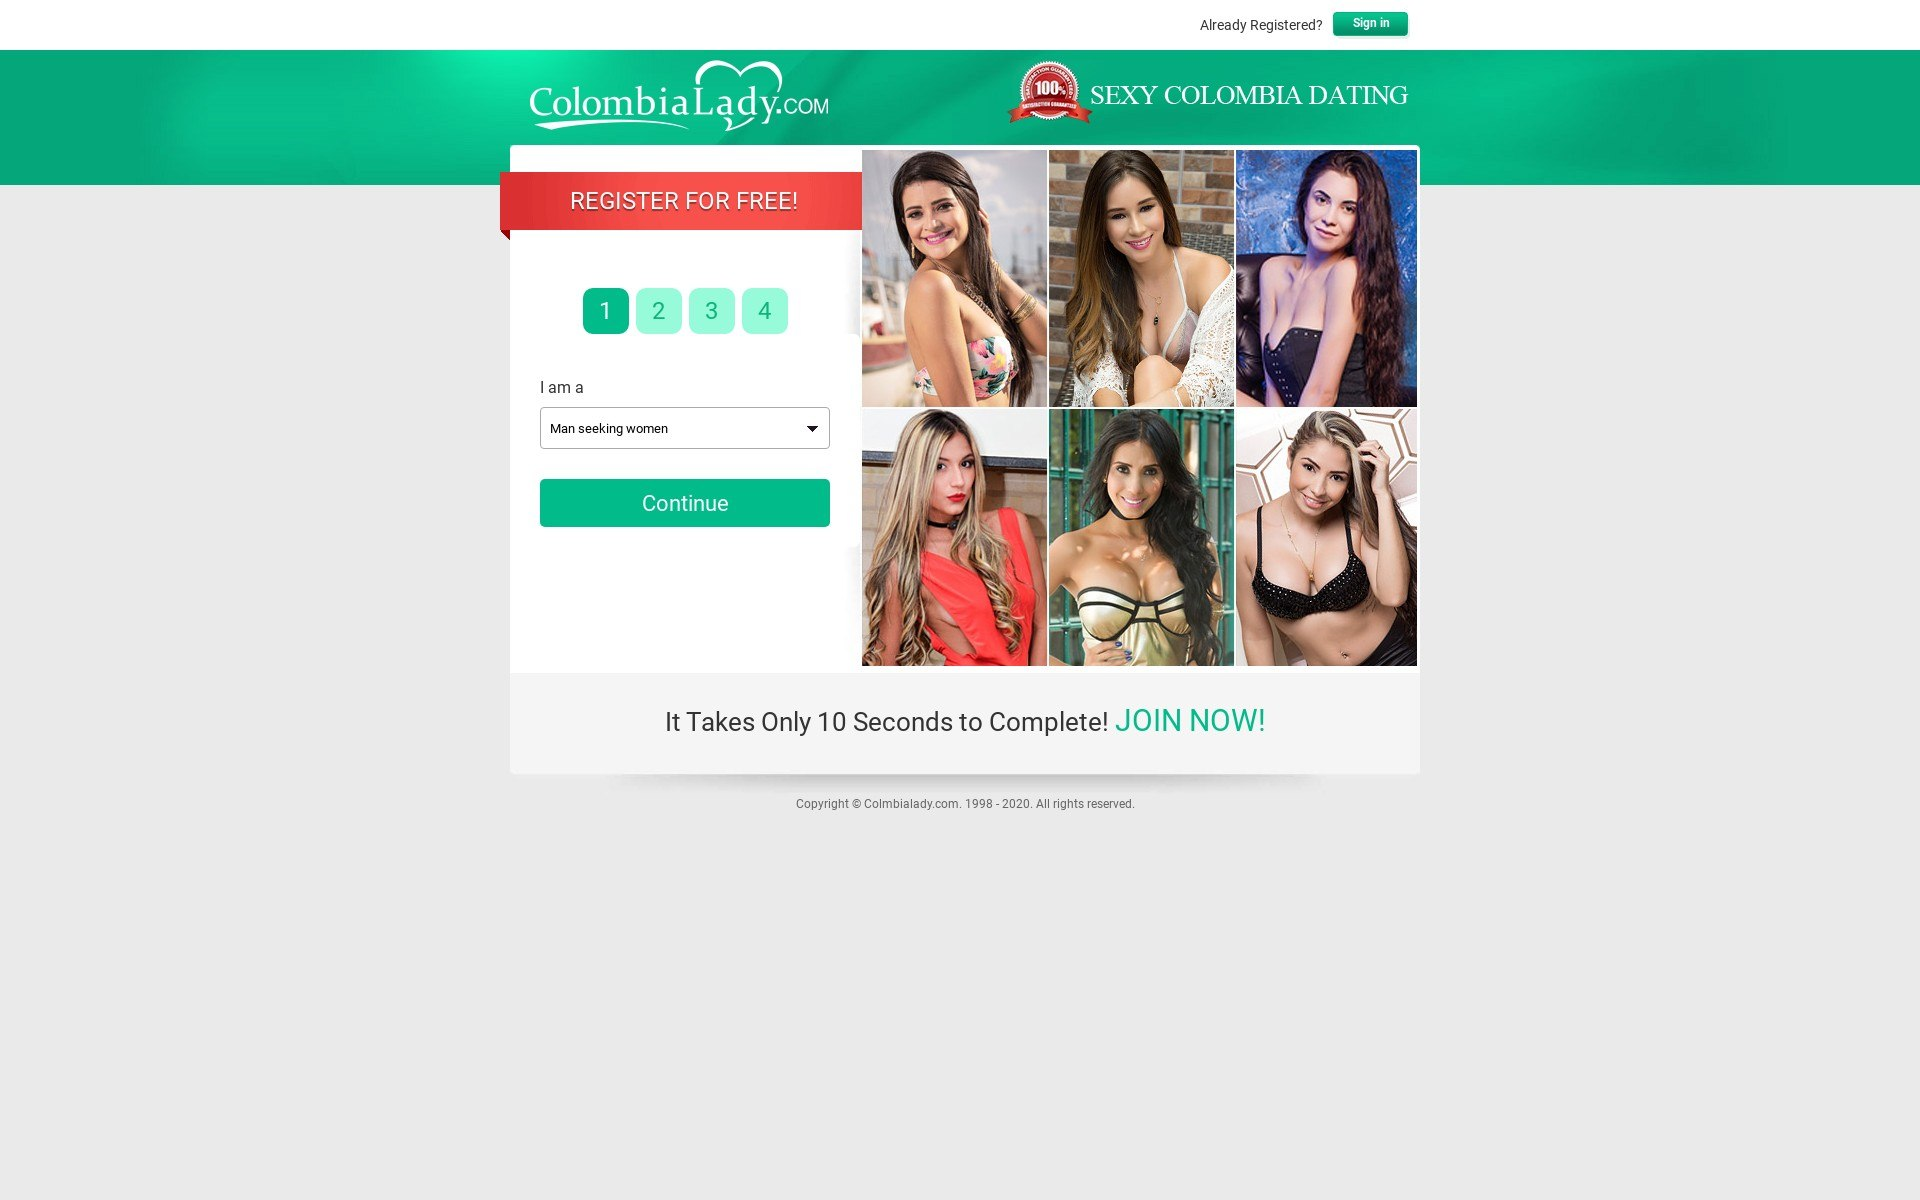 Review Colombia Lady Site